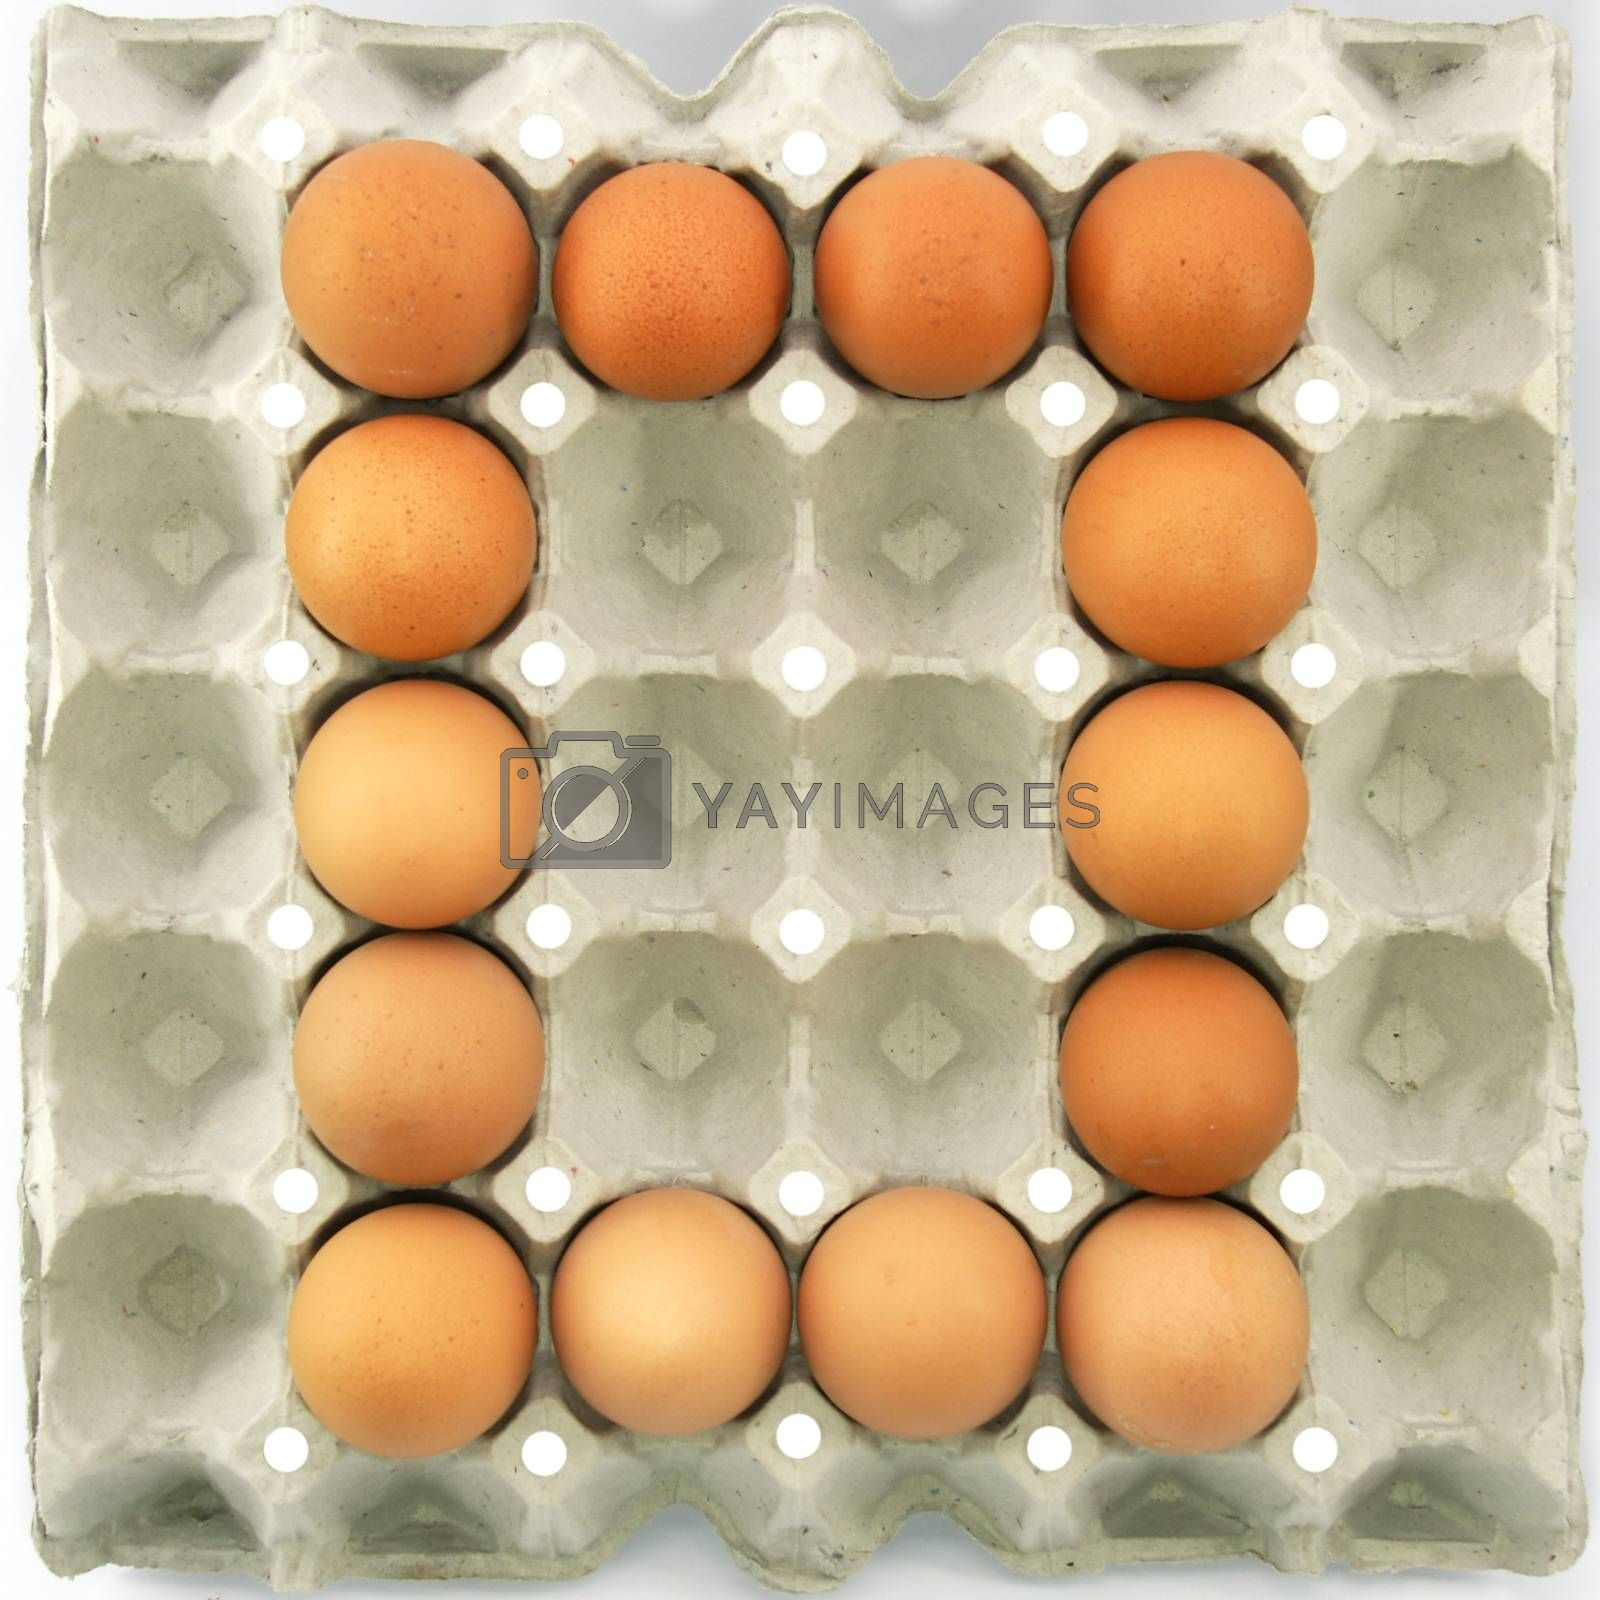 Number zero of eggs in the paper package tray